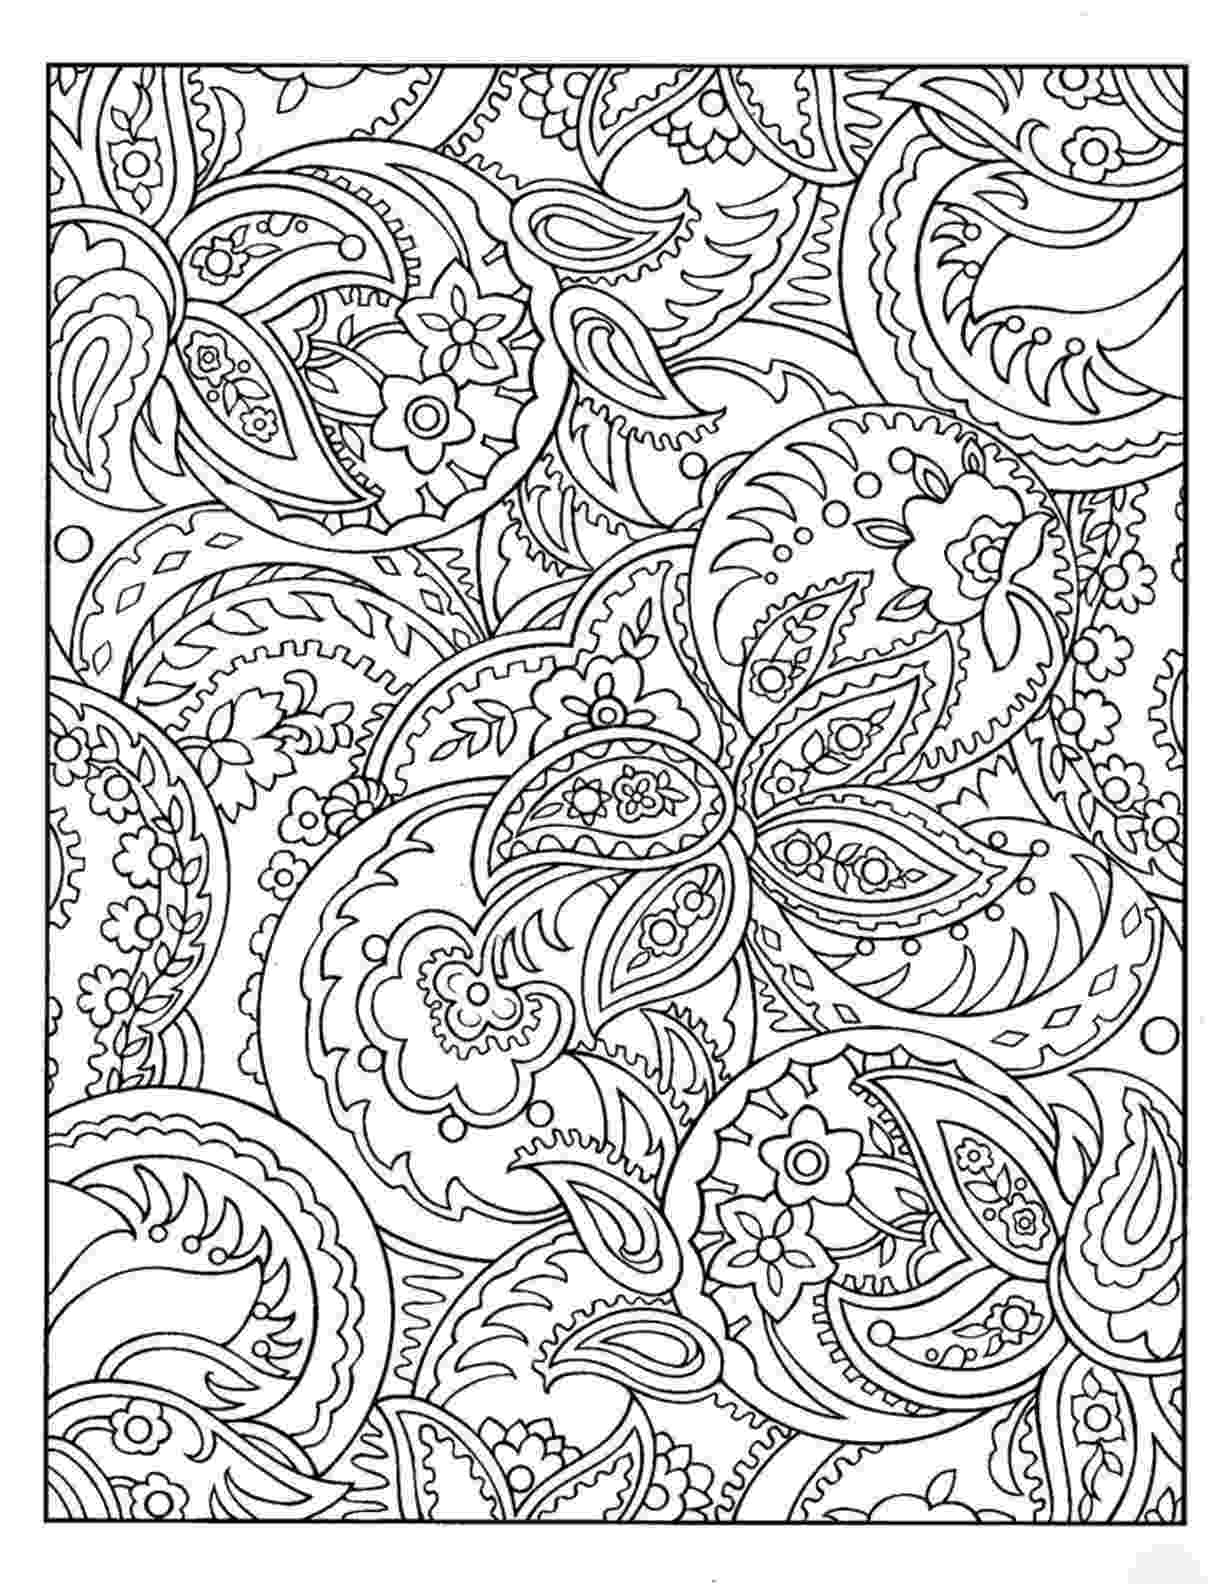 pattern coloring page pattern coloring pages best coloring pages for kids coloring page pattern 1 1